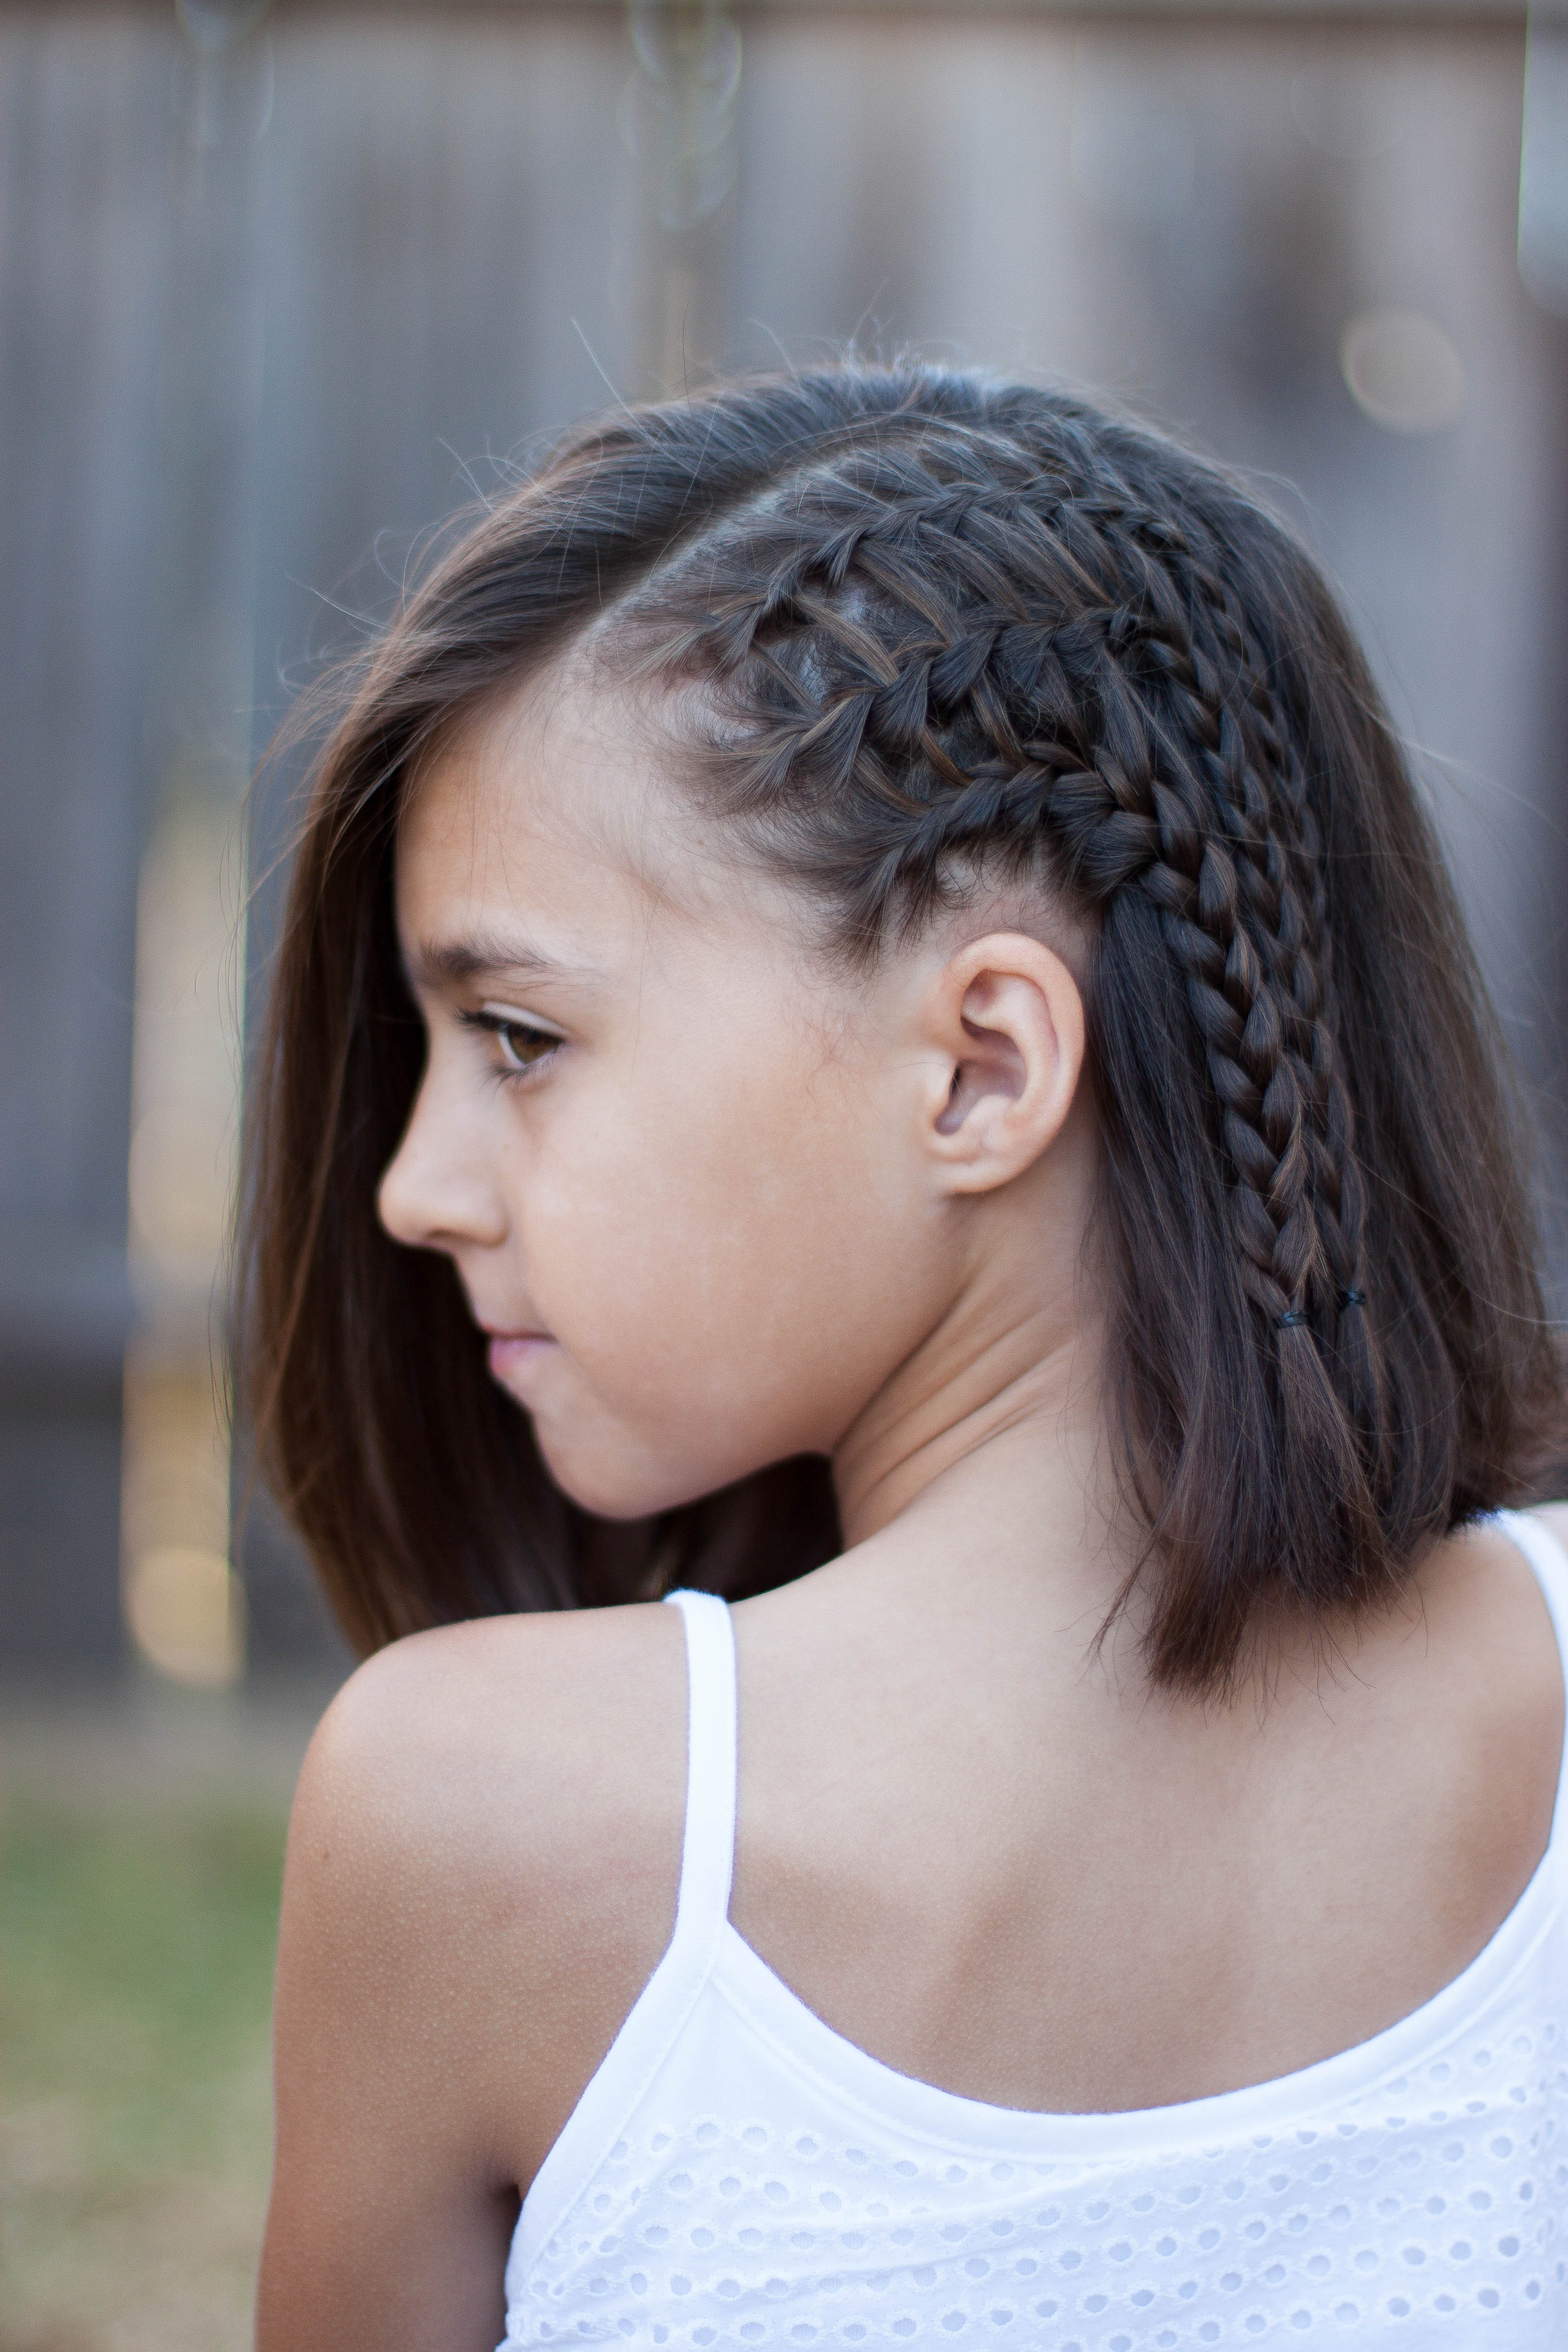 Best ideas about Cute Girls Haircuts . Save or Pin 5 Braids for Short Hair Now.